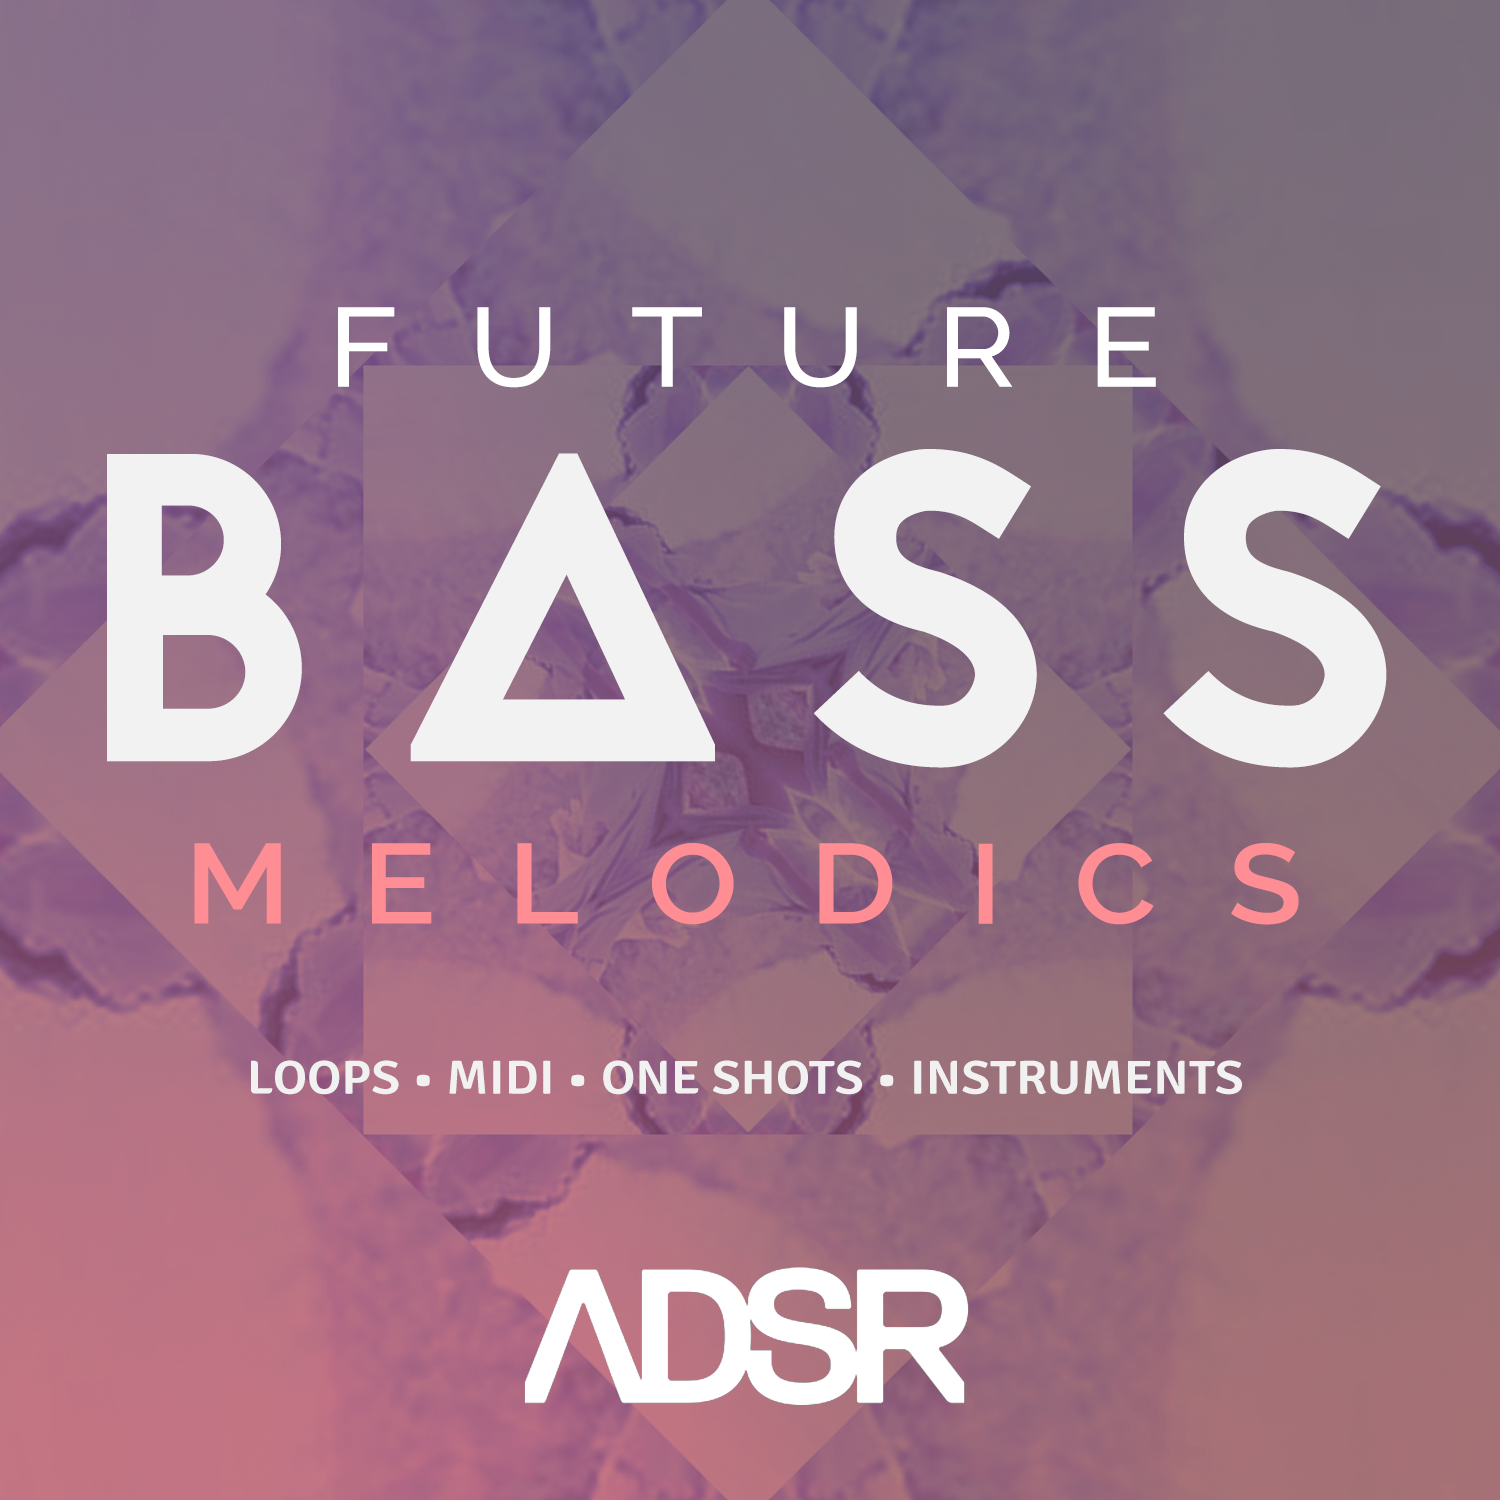 ADSR FUTURE BASS MELODICS